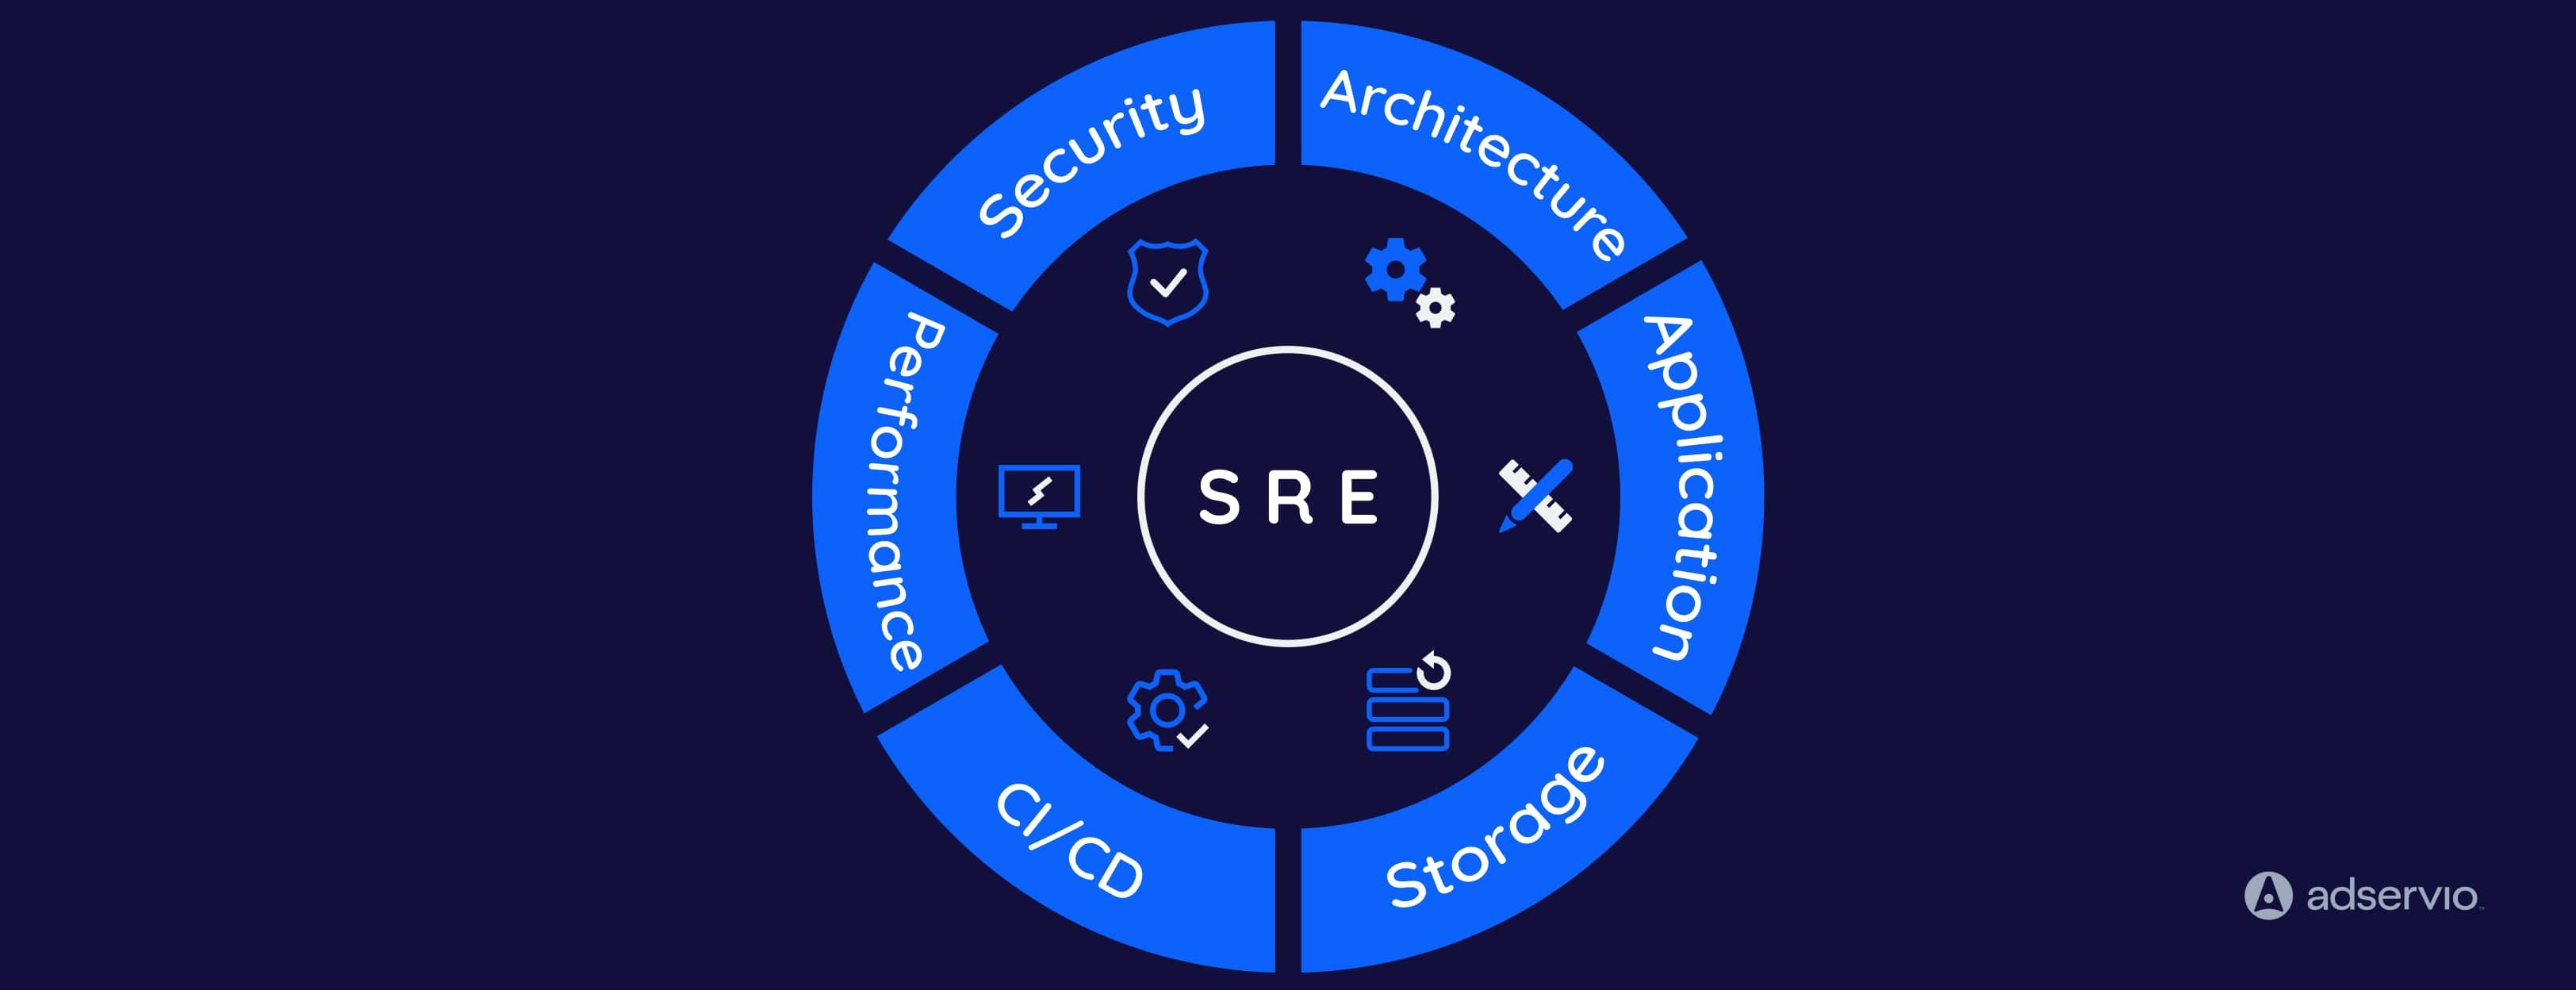 what is included in SRE cycle